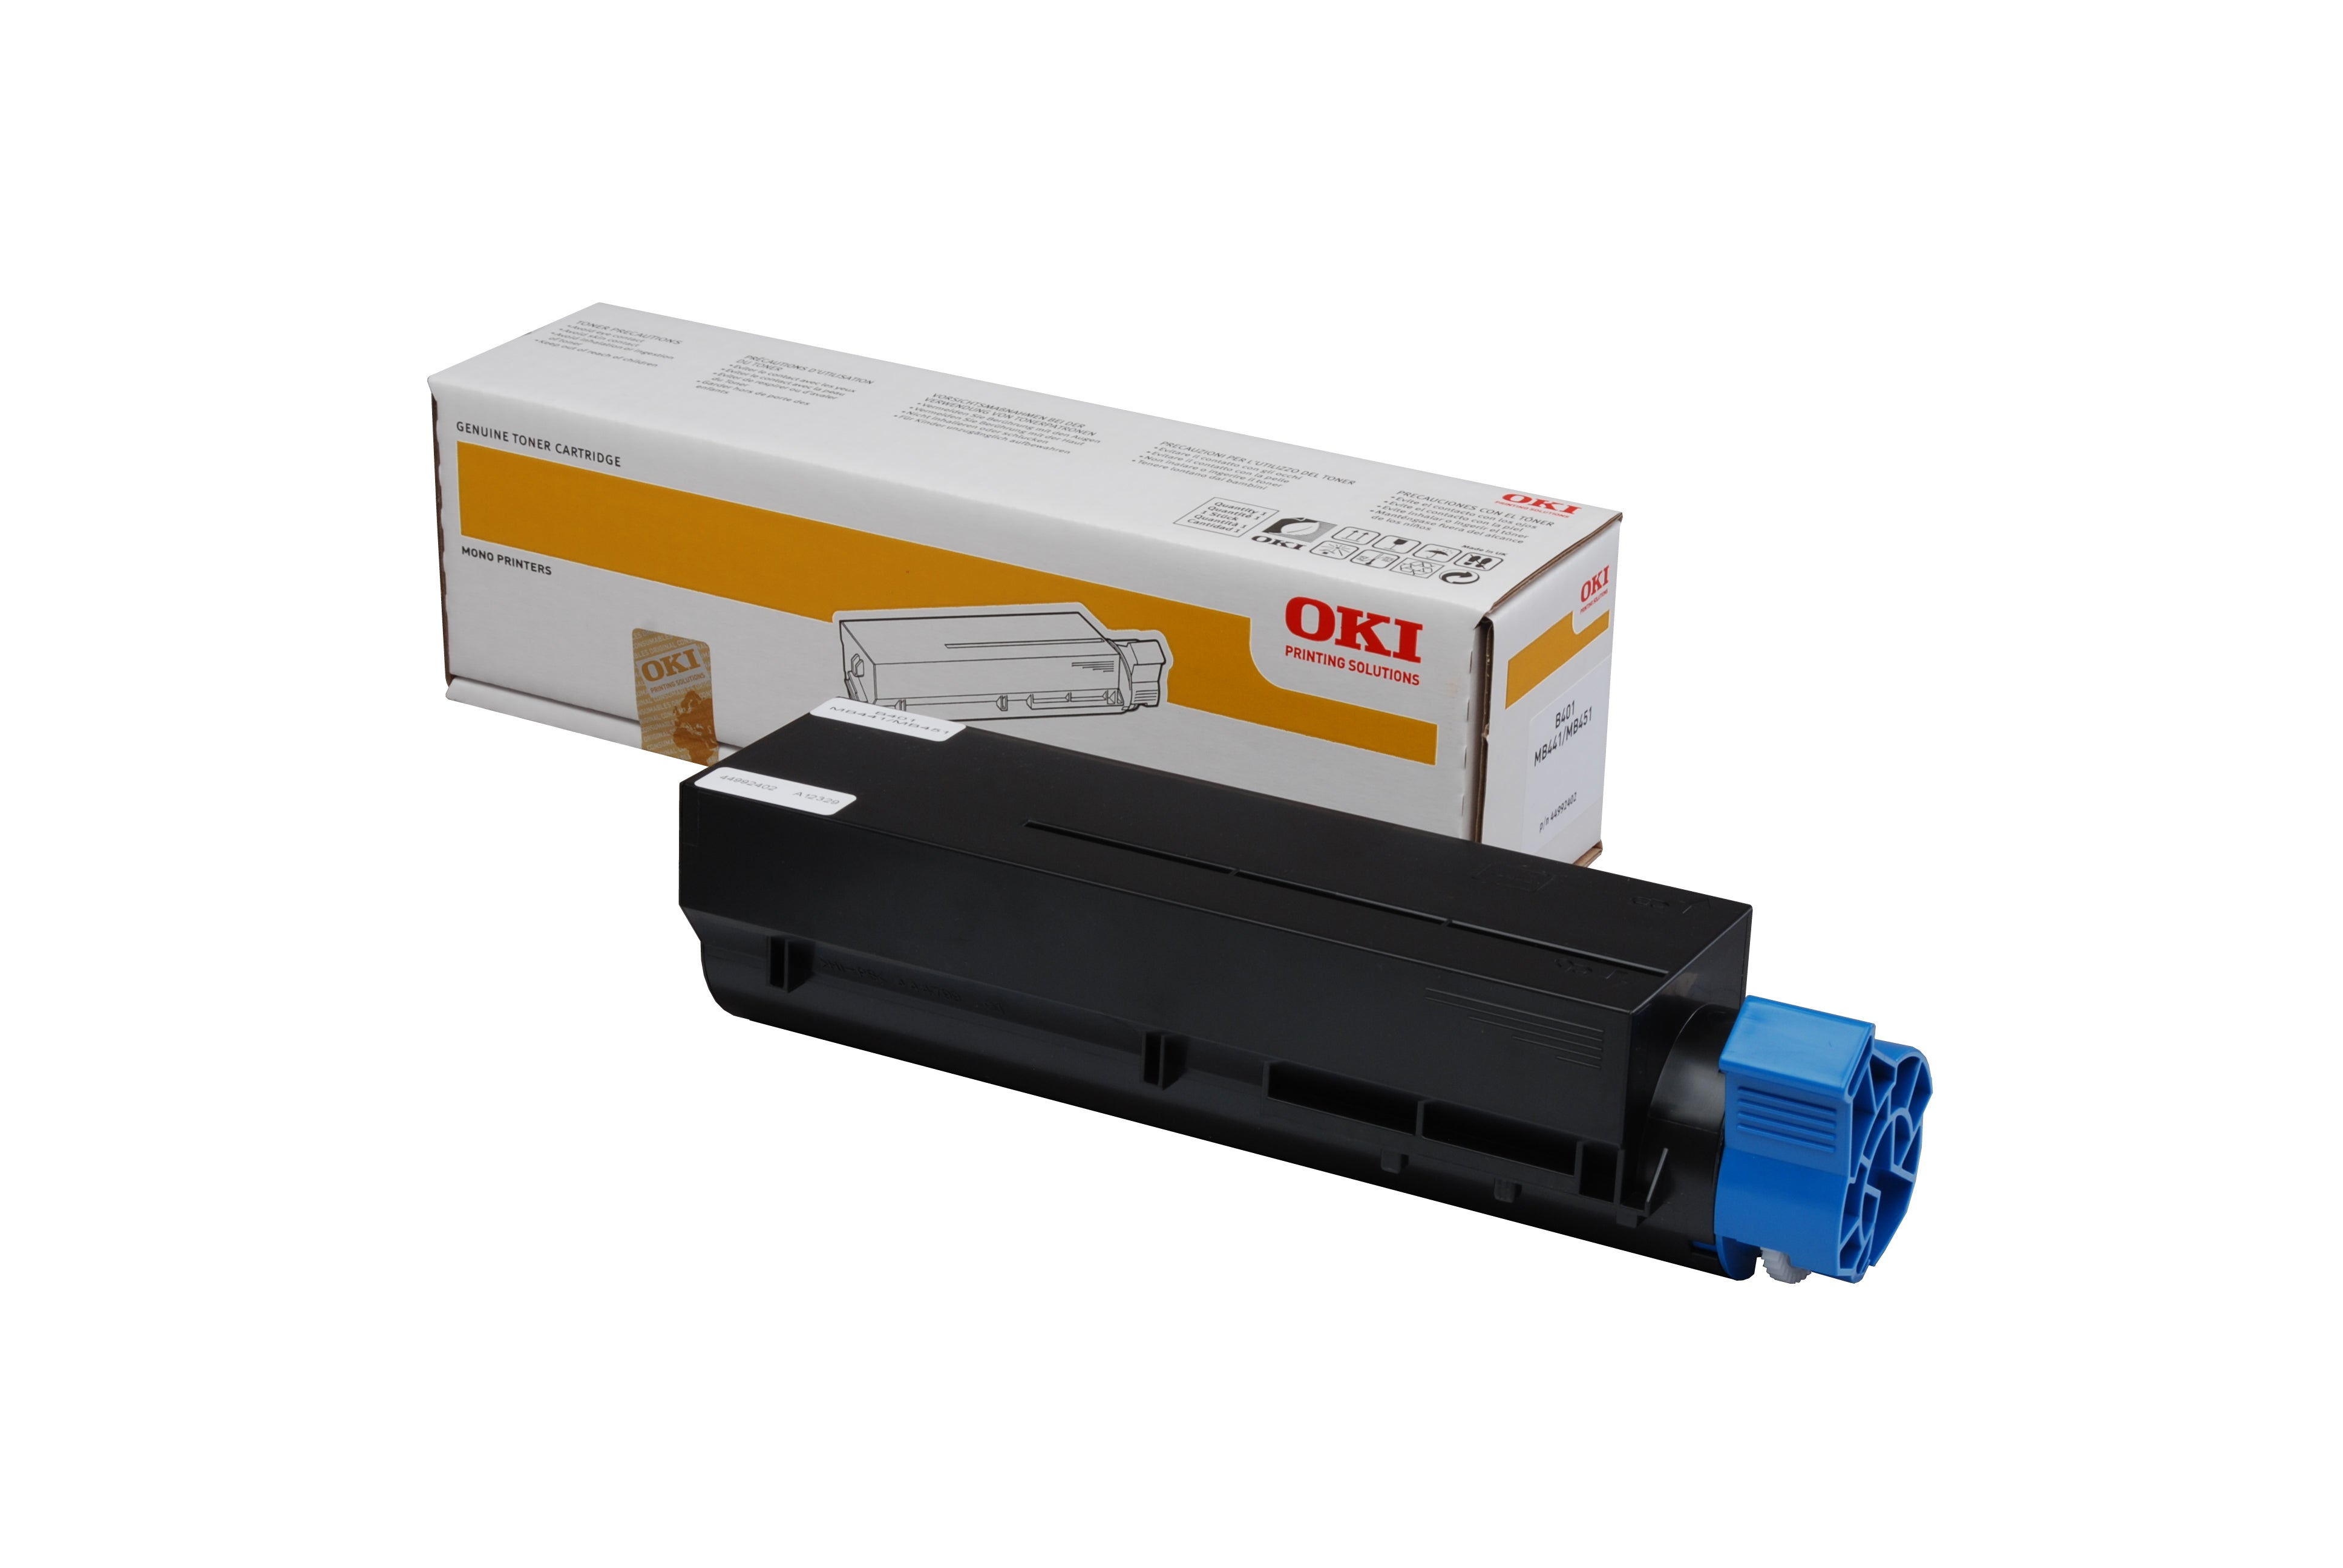 OKI B401dn Black Toner (2,500 Pages) 44992407